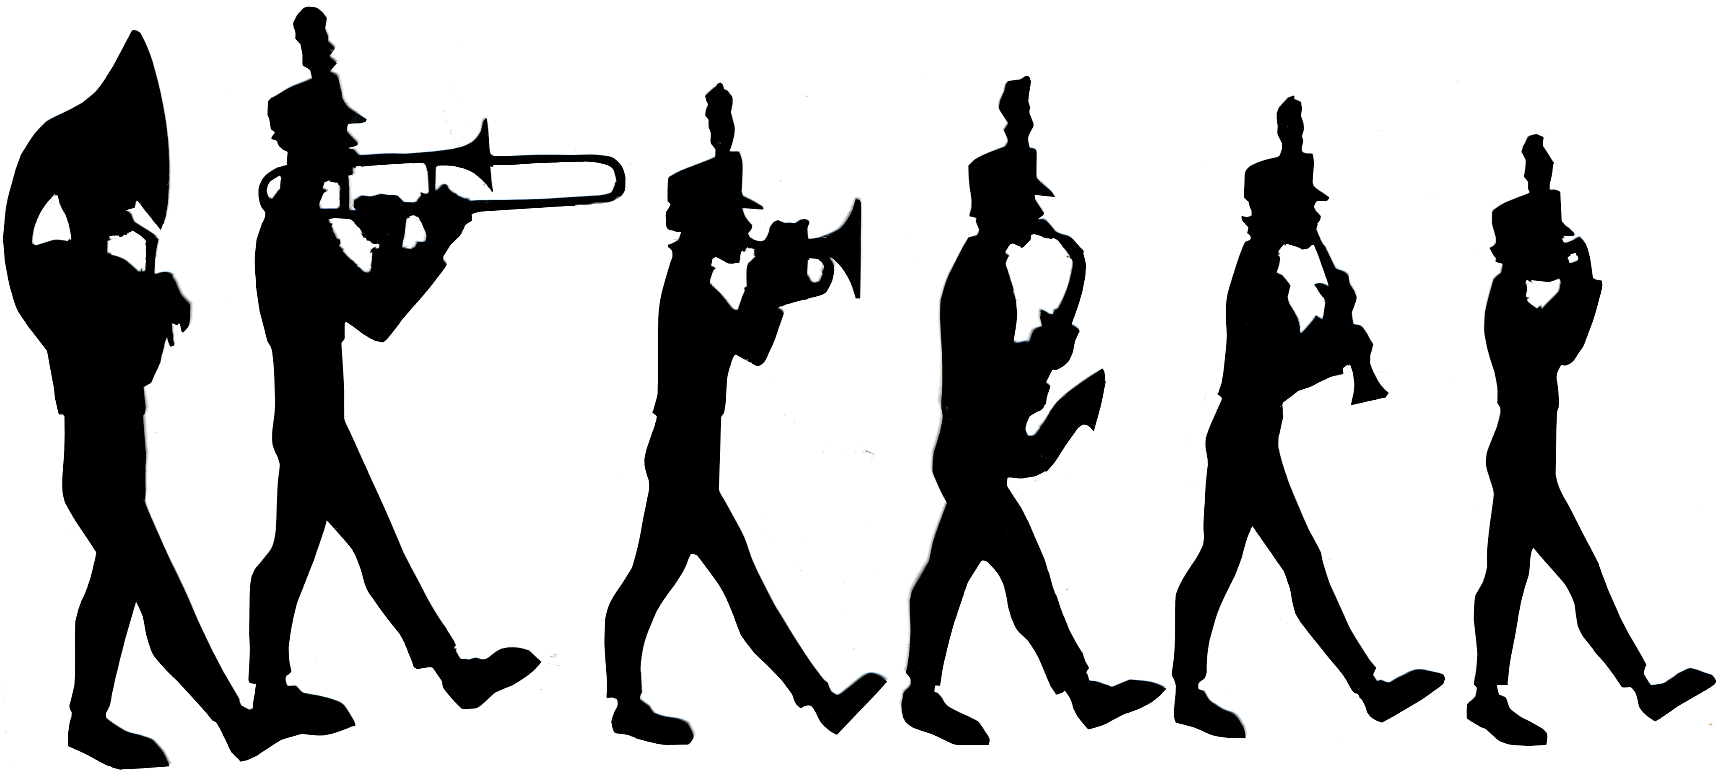 Marching Band Silhouette Clip Art